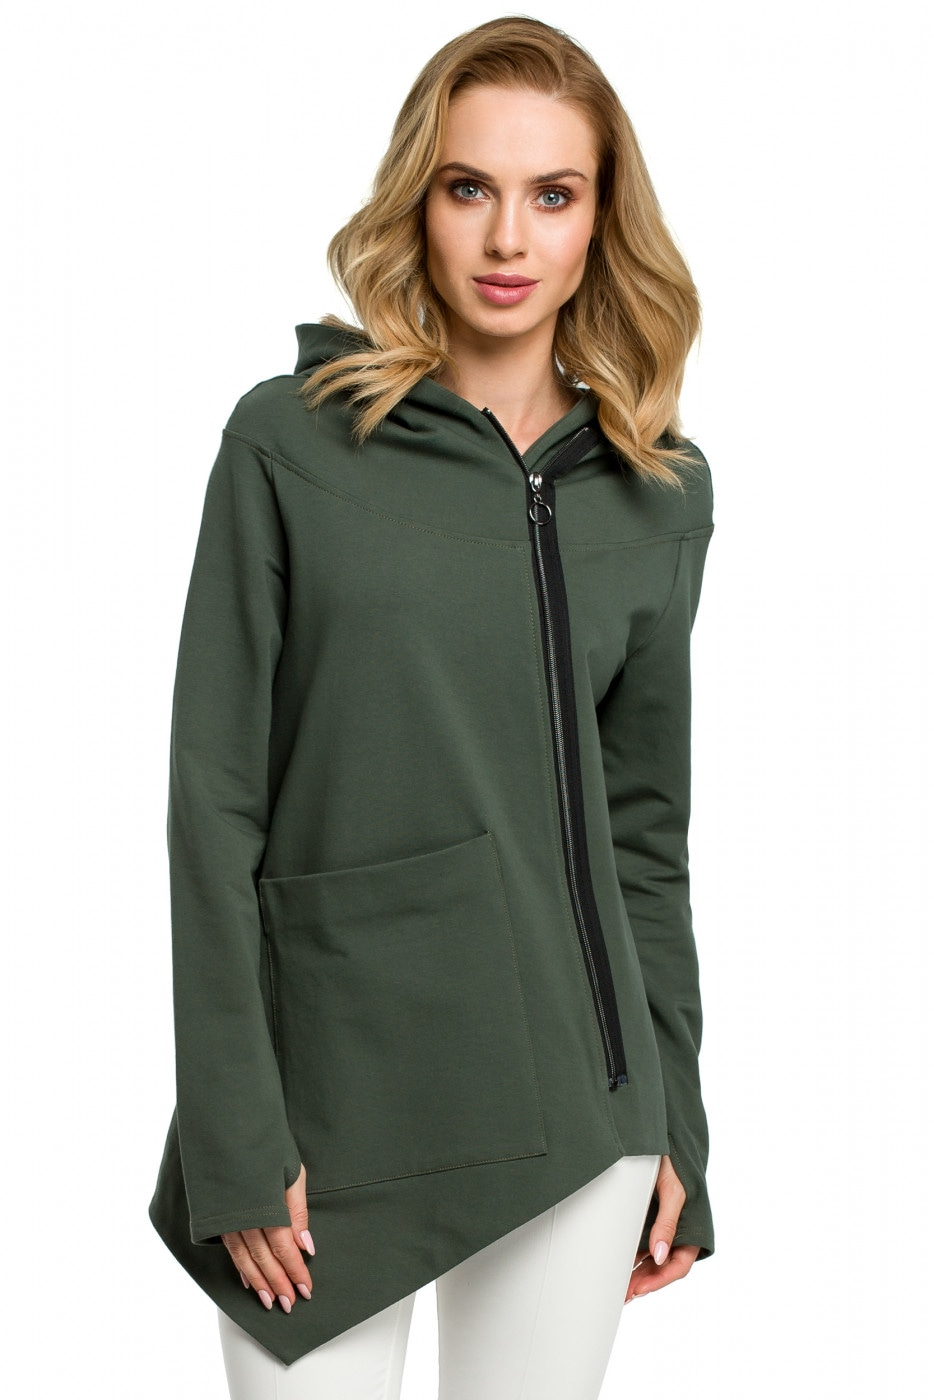 Made Of Emotion Woman's Sweatshirt M390 Military